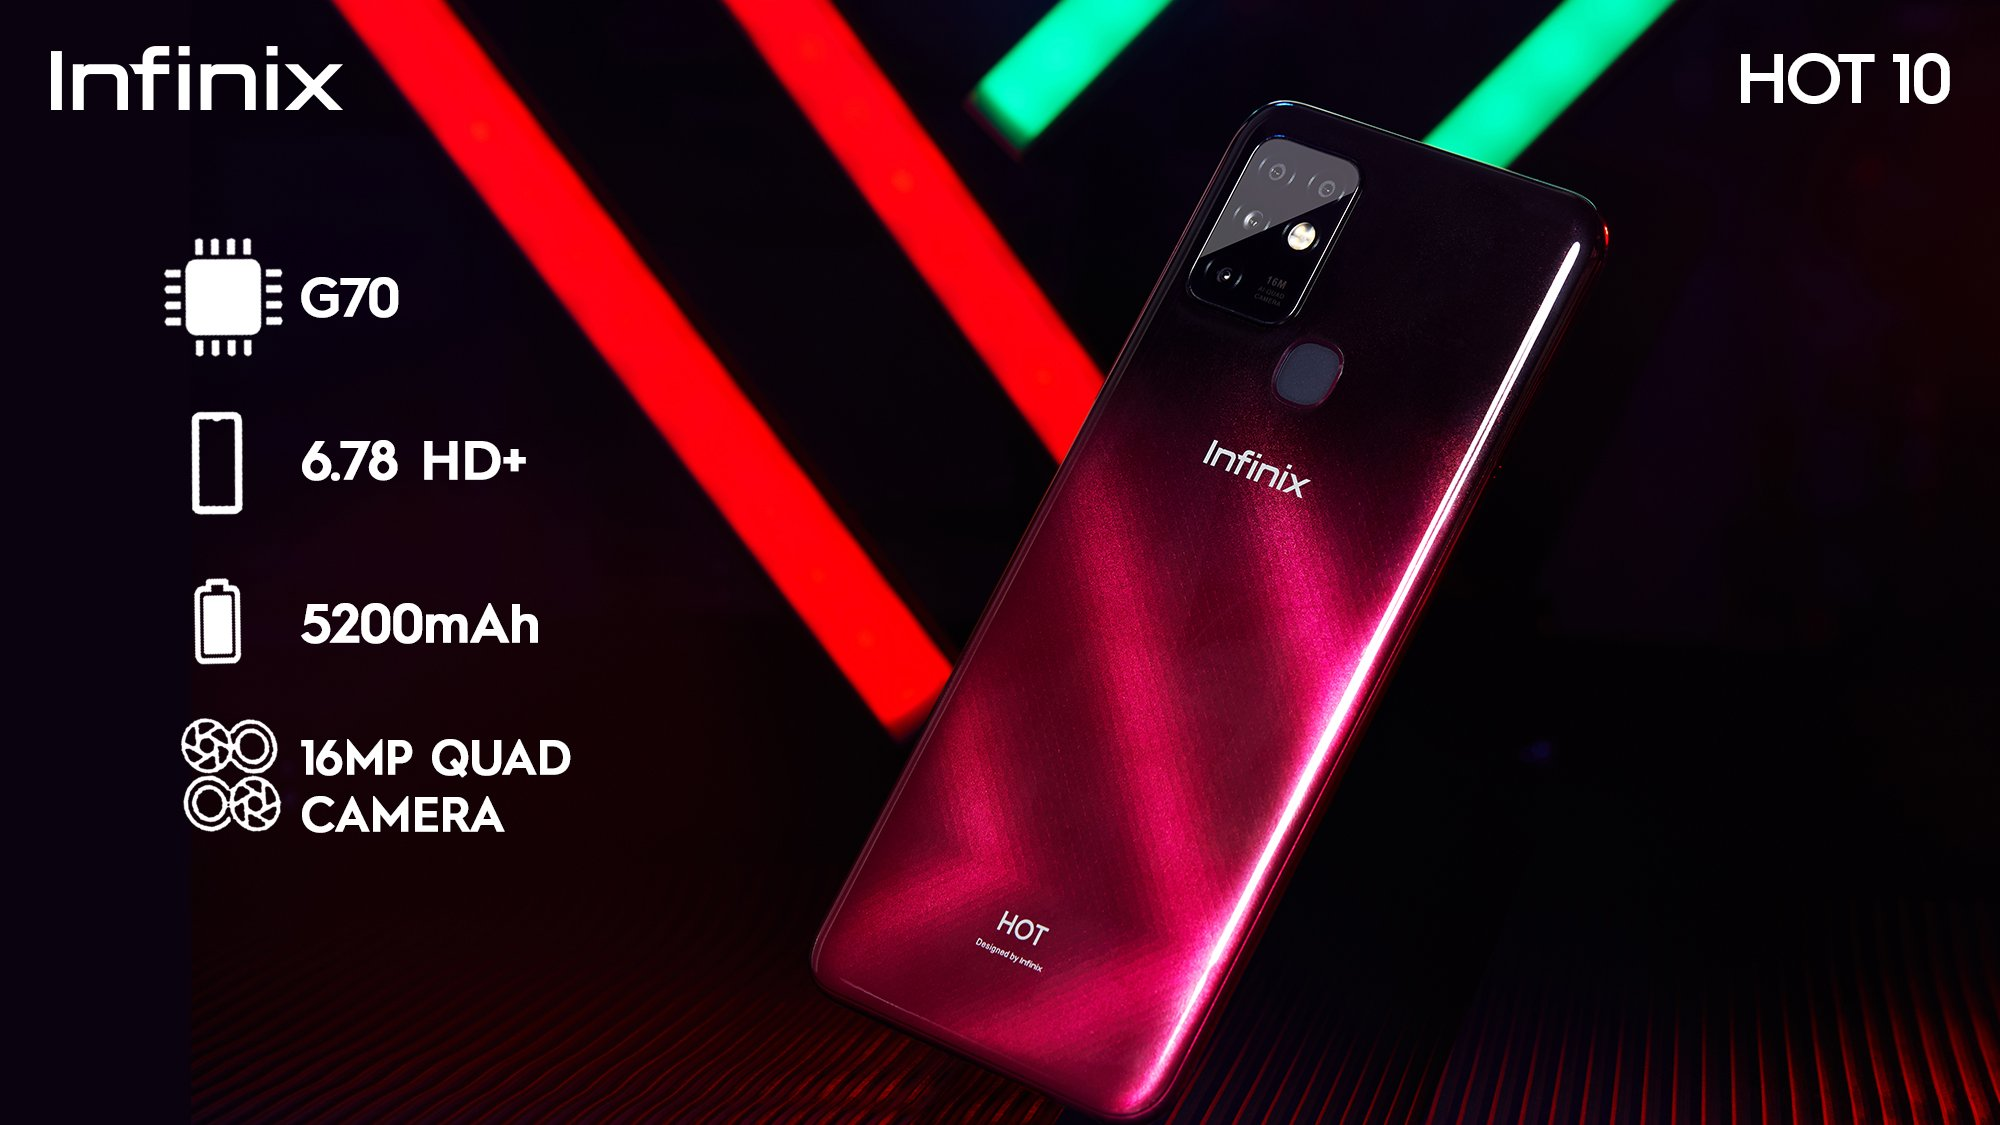 Eiw4c8lXYAMoWl2?format=jpg&name=large - Infinix Hot 10 price in Nigeria and full specs